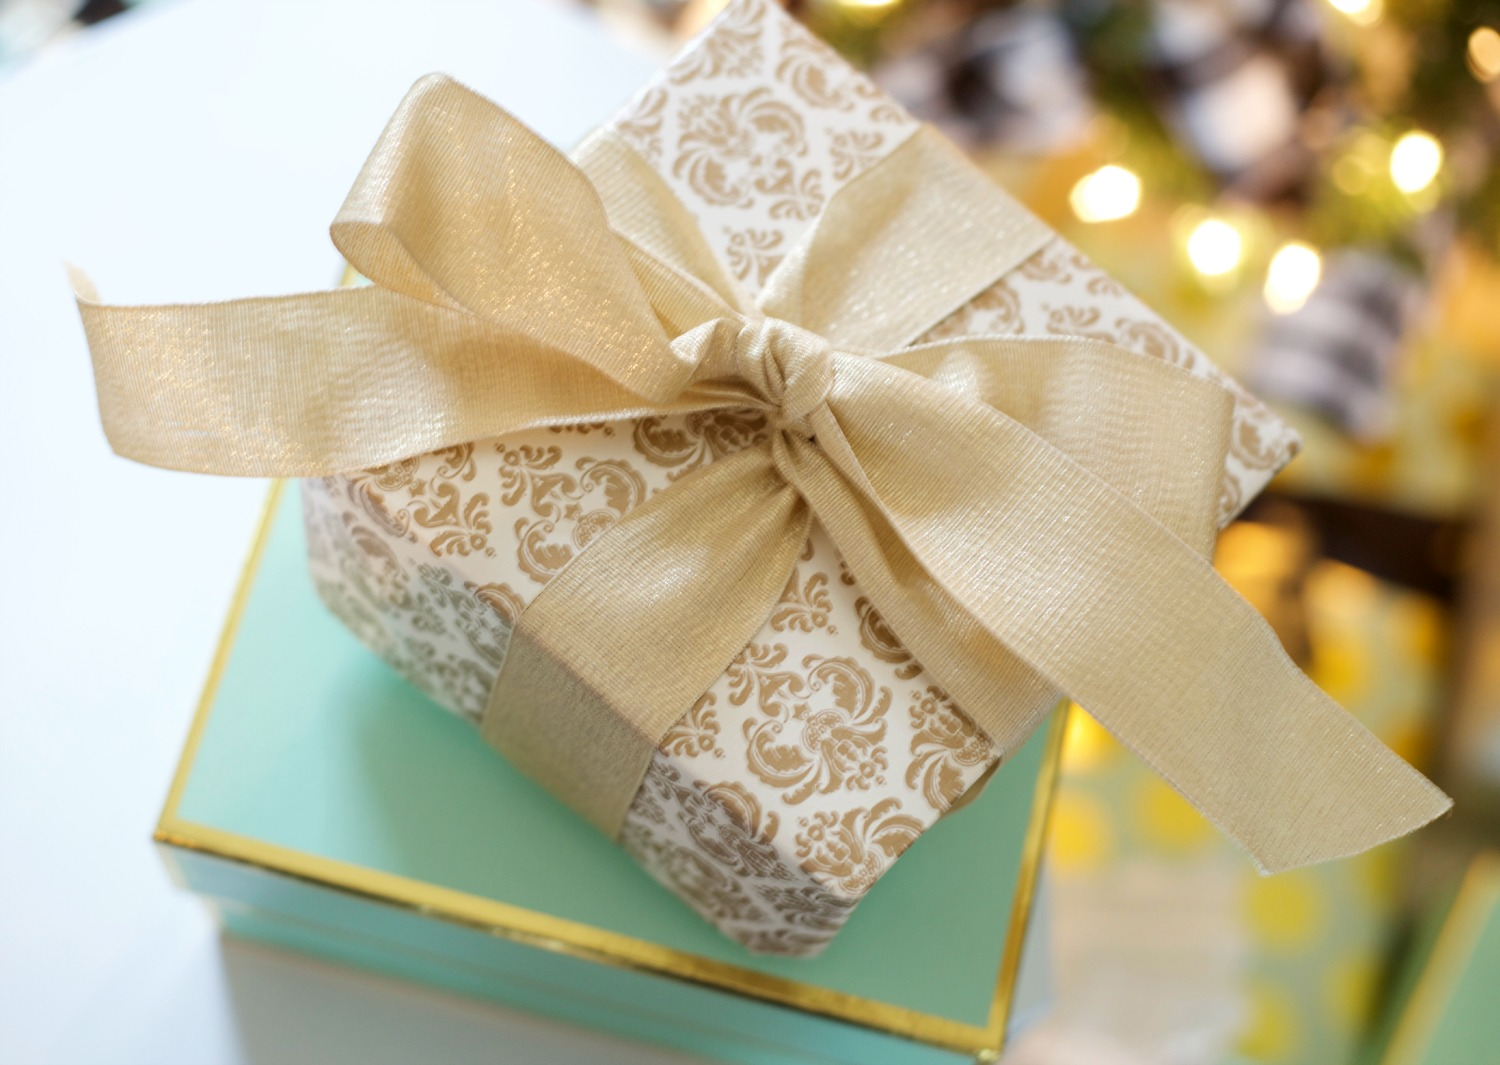 DIY Gift Box by PartiesforPennies.com | Gift Wrap, Homemade Gift, Christmas, Present, Paper Craft